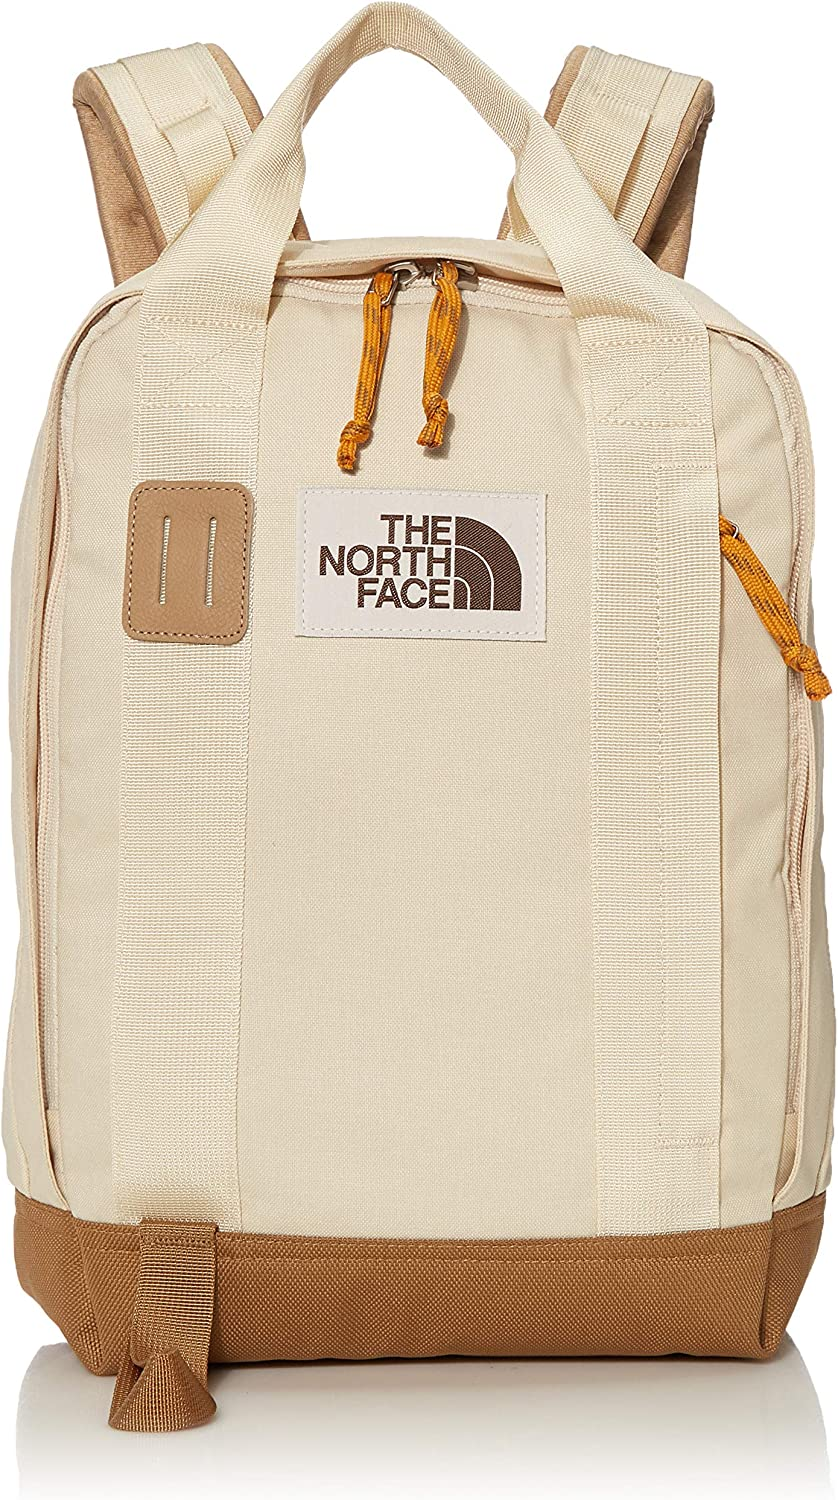 The North Face Tote Pack Bleached Sand Dark Heather/Utility Brown One Size